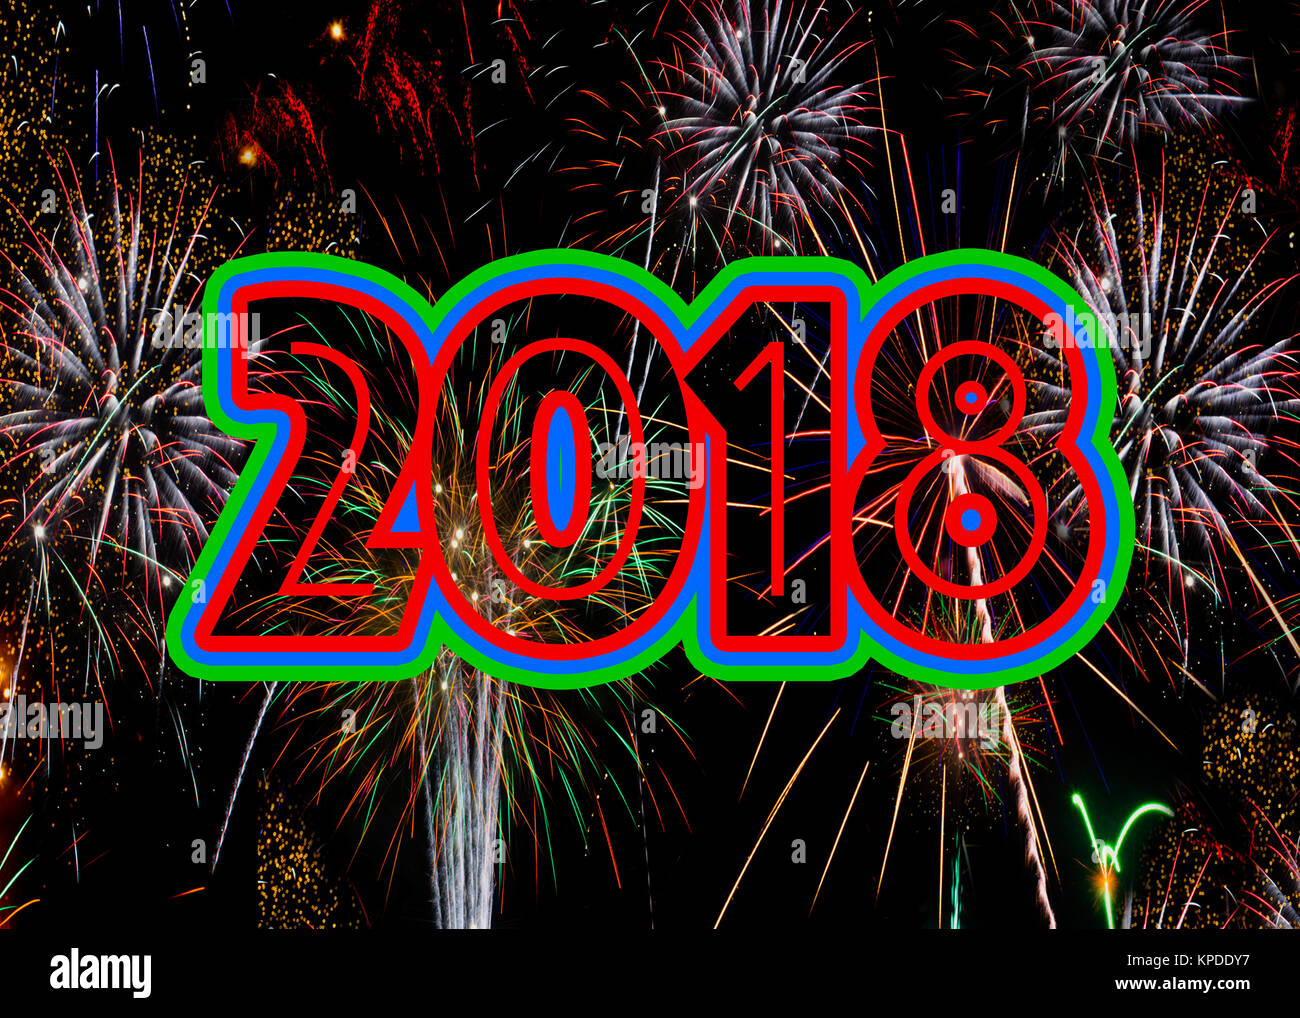 Fireworks 2018 New Years Eve concept exploding fire works celebration. Ratio for A5 and 7x5 greetings cards - Stock Image